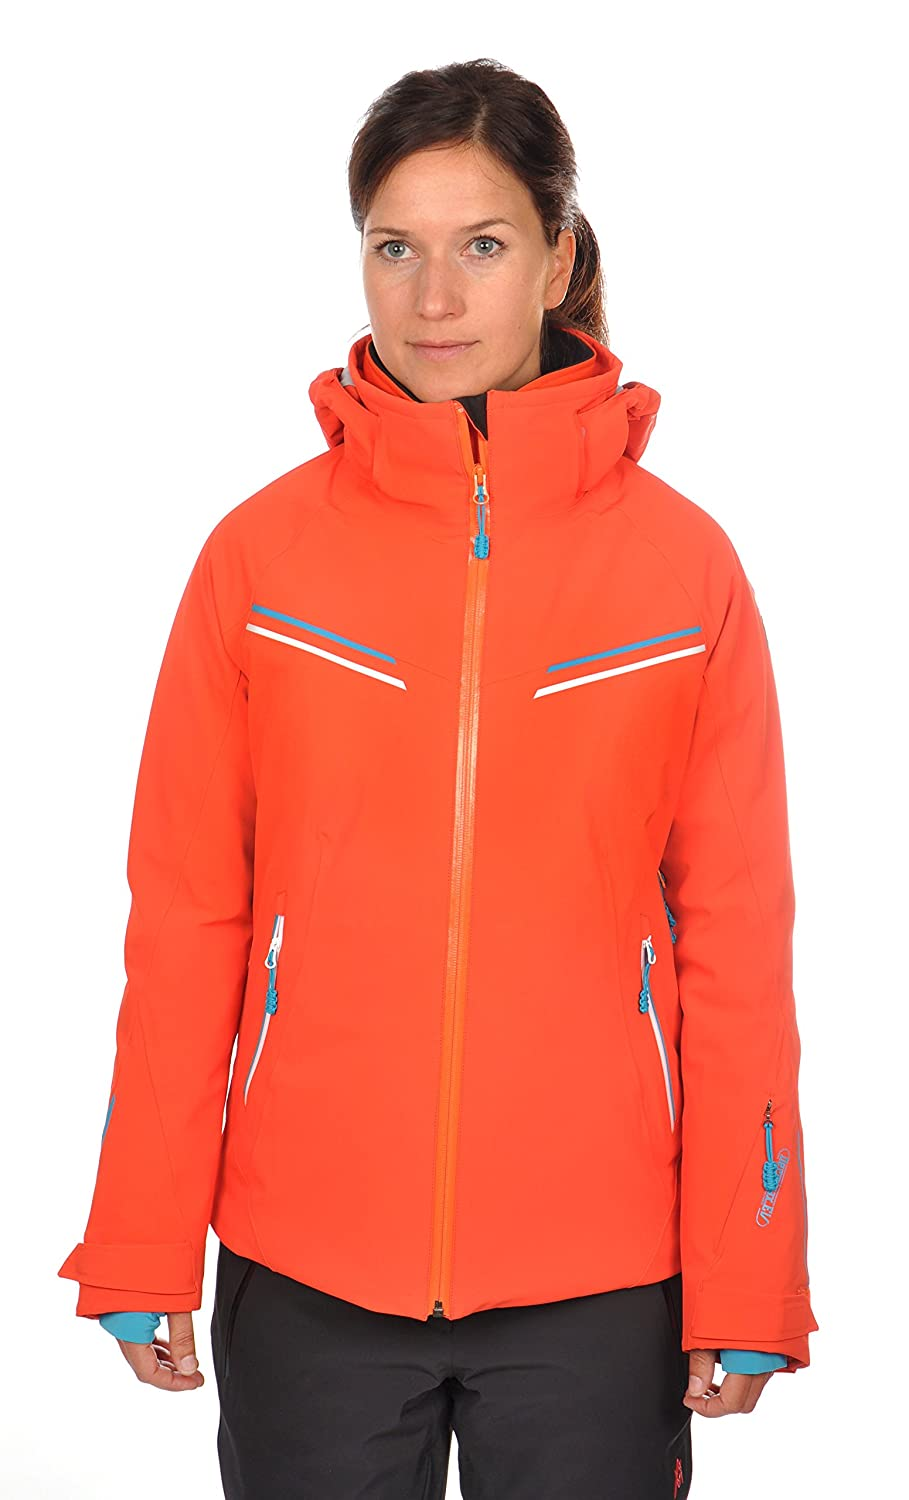 Völkl Performance Wear Damen Skijacke Crystal Jacket online kaufen